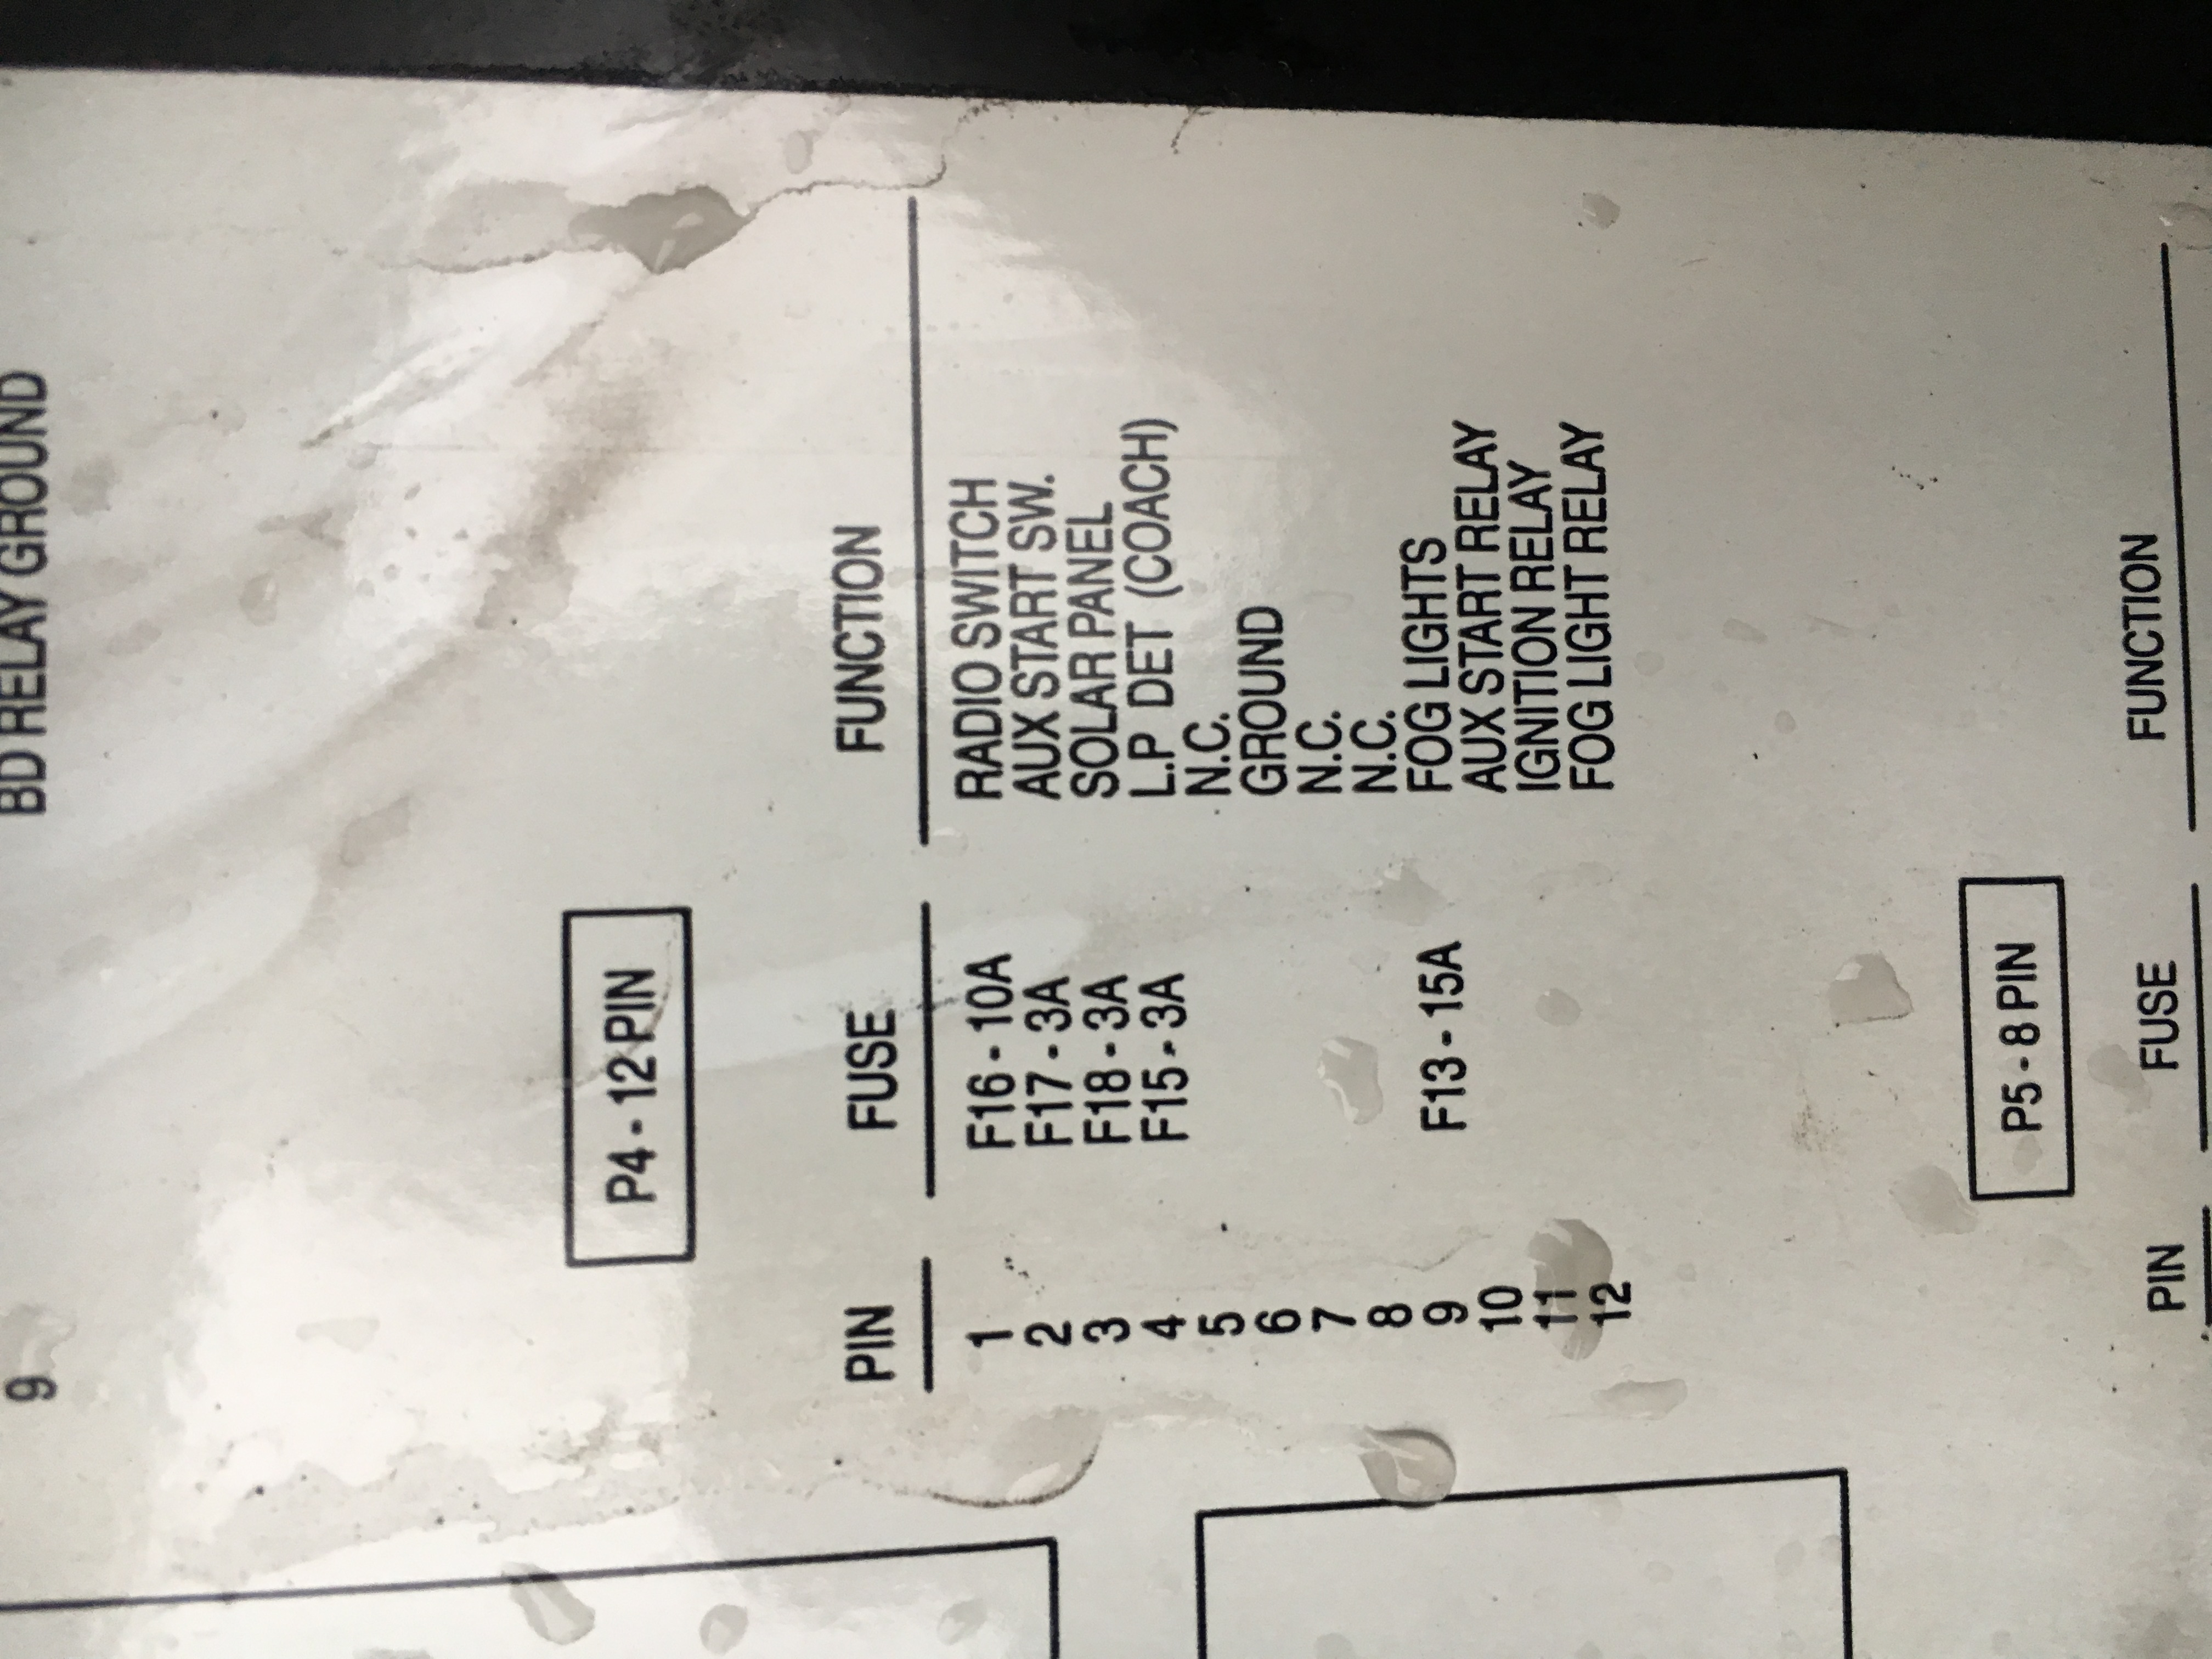 I Have A 2003 Pace Arrow The Switch For Engine Battery And Fleetwood Wiring Diagram Img 3765